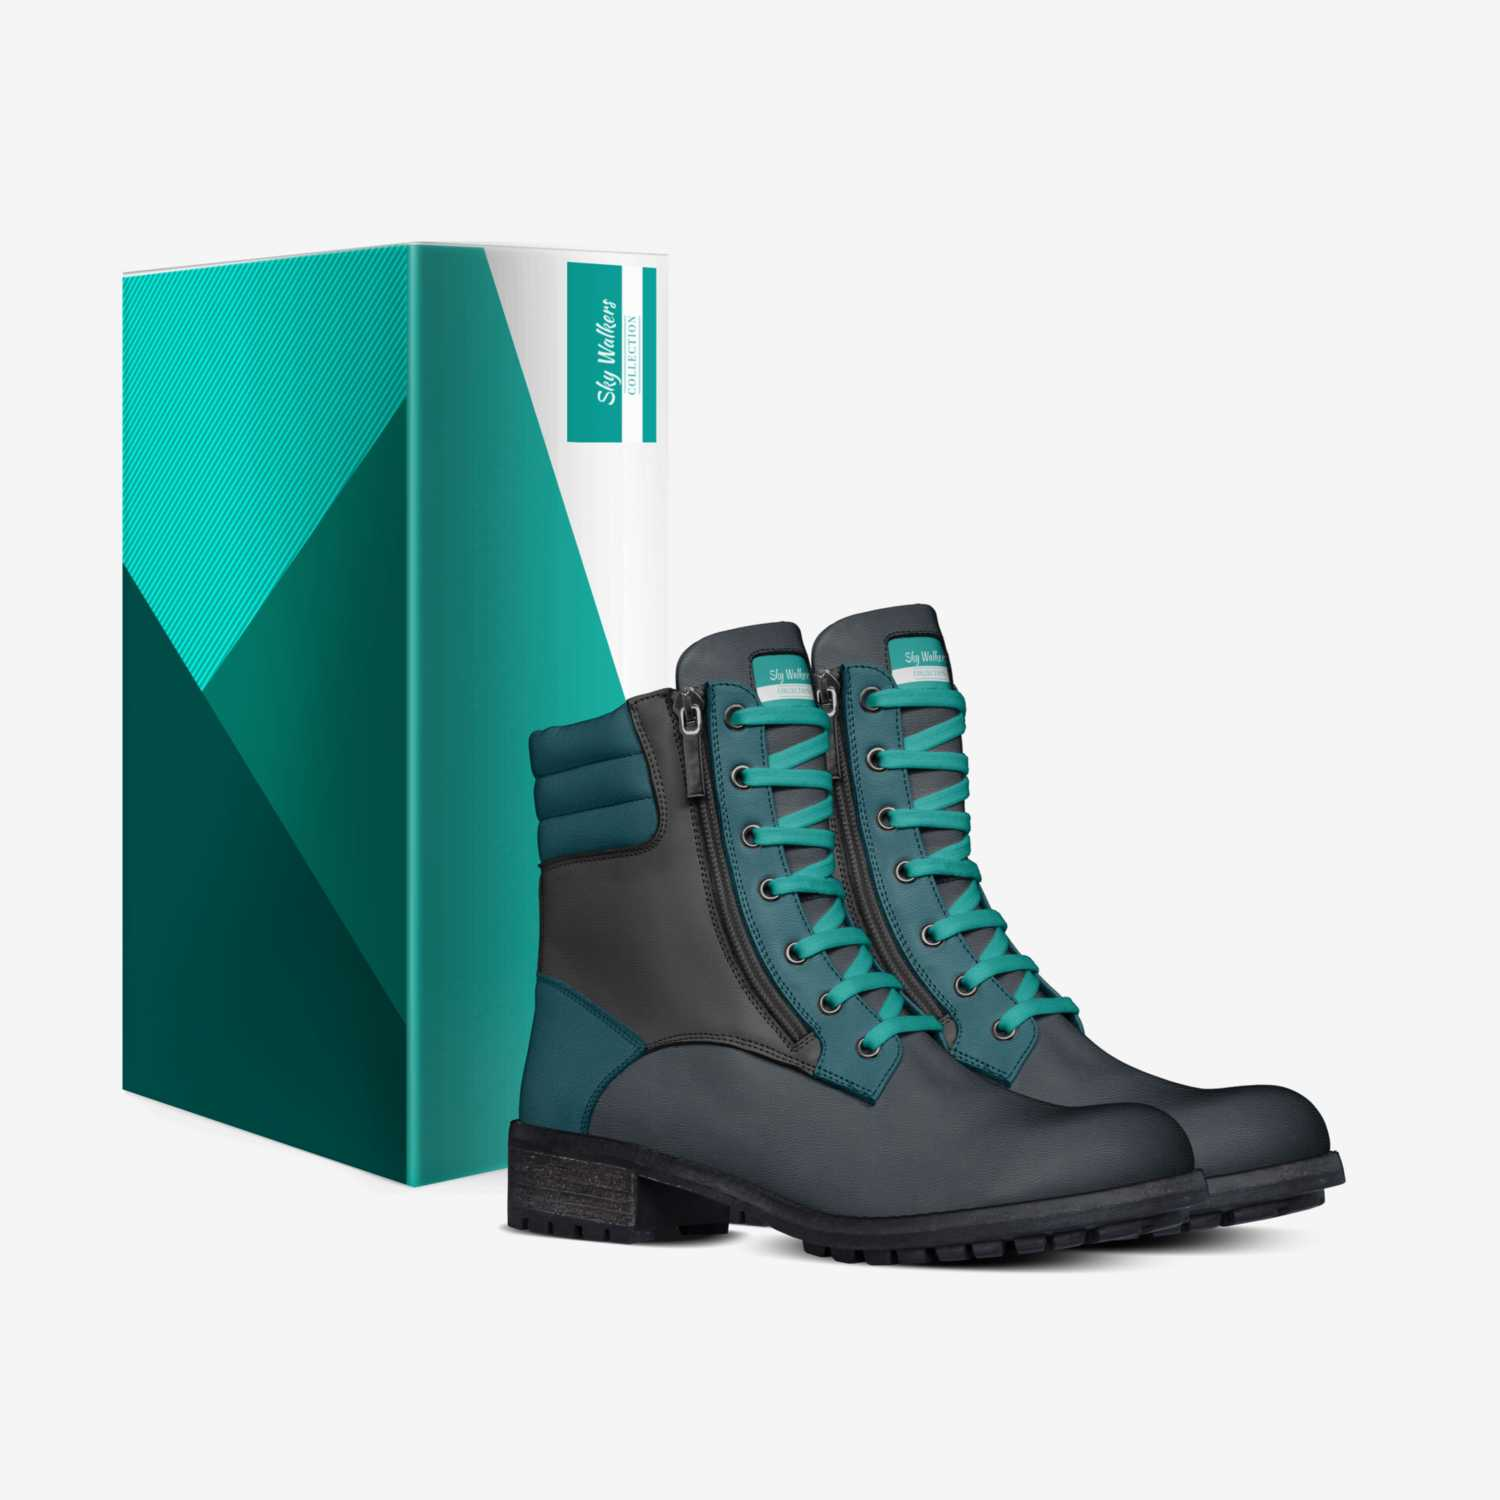 724f50d71a Sky Walkers custom made in Italy shoes by Skylar Love | Box view